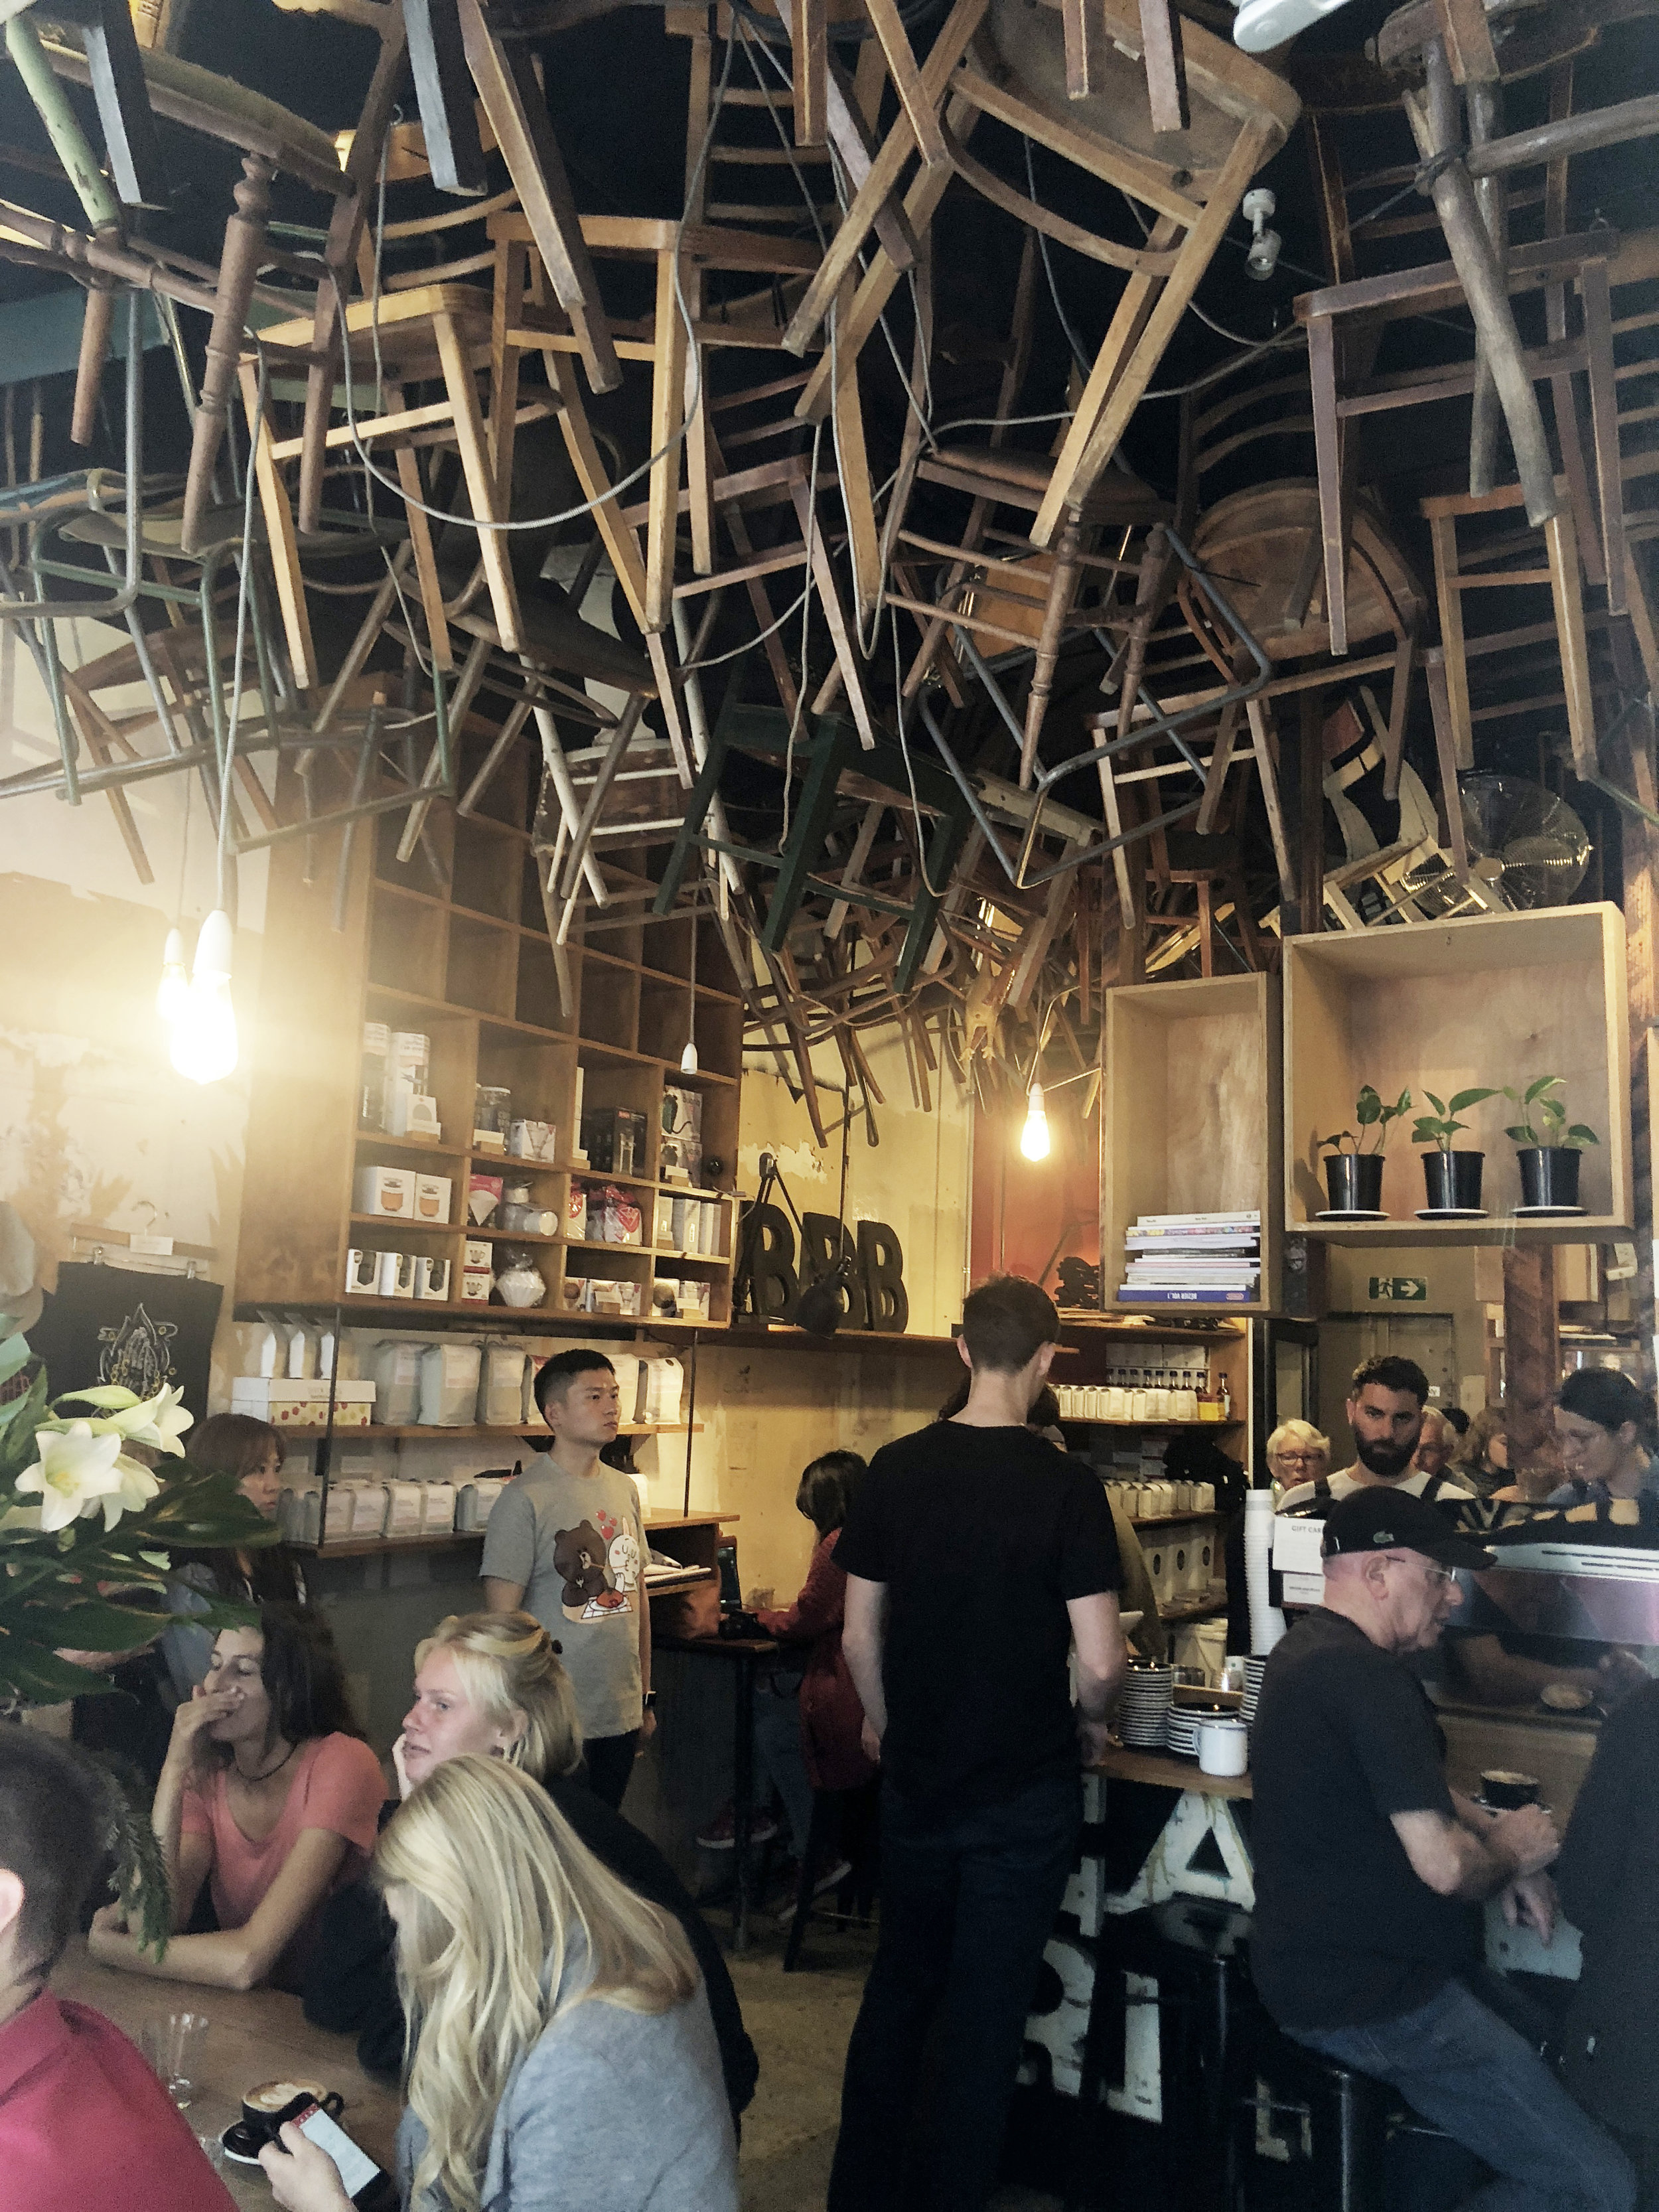 BROTHER BABA BUDAN / Brother Baba Budan   A very very busy and small coffee shop along little bourke street. Hard for any photos inside but would really recommend its coffee! 📍359 Little Bourke St, Melbourne VIC